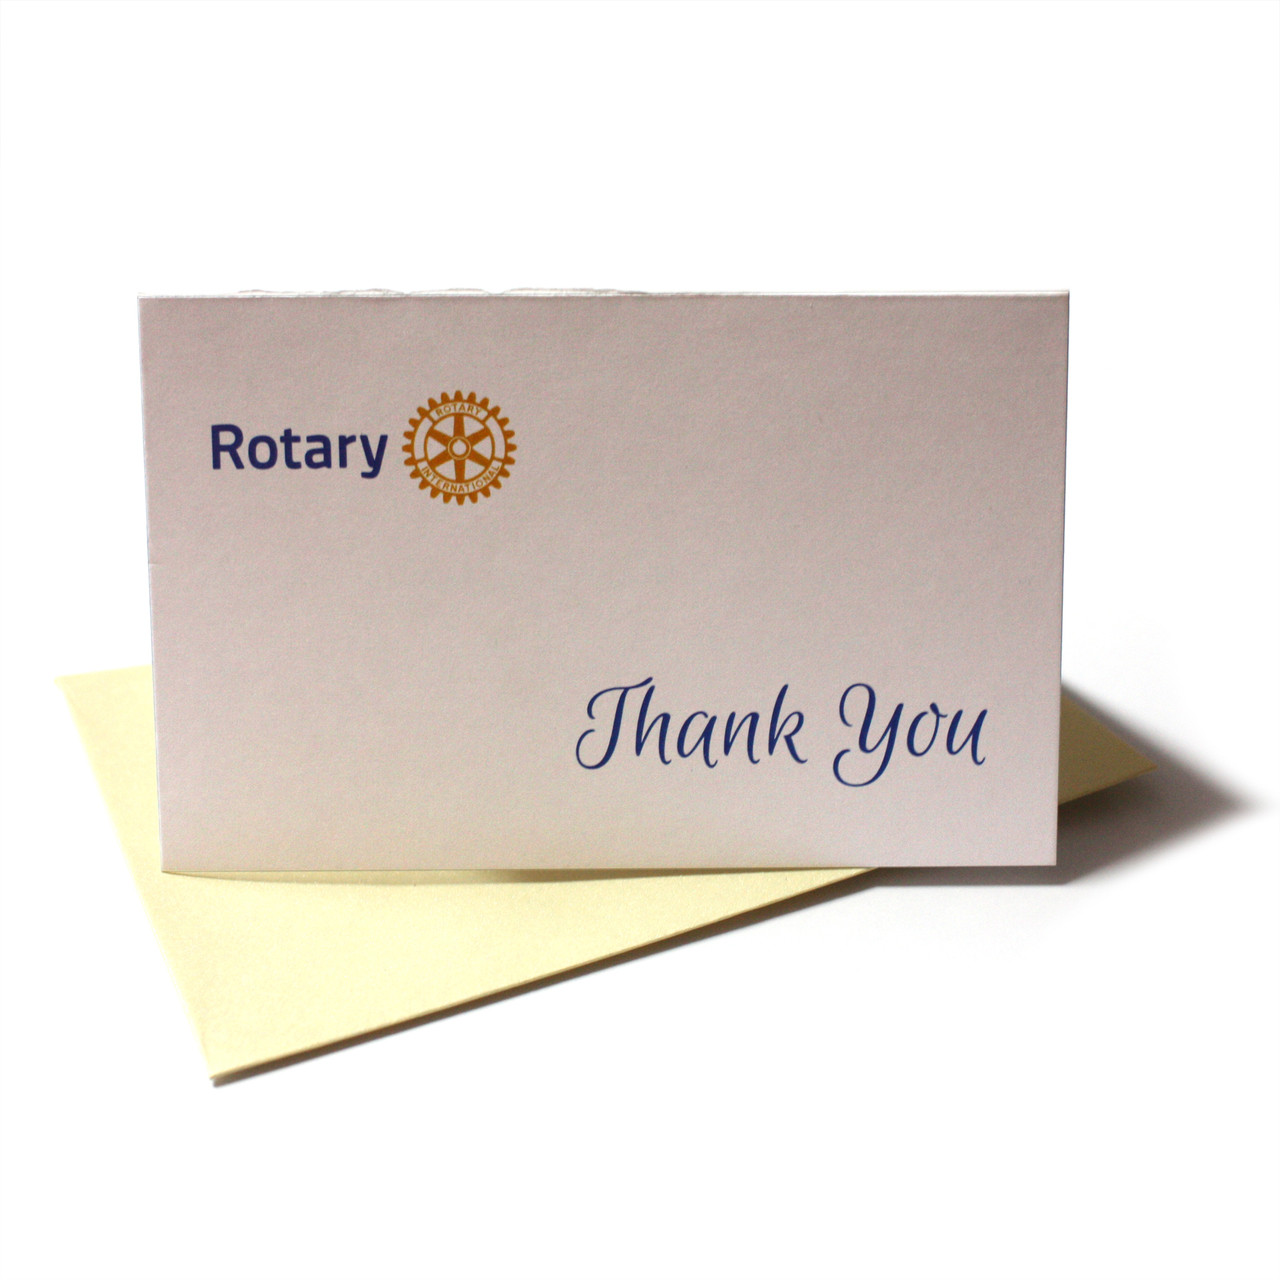 Rotary Thank You Cards 10 Pack Rotary Down Under Supplies